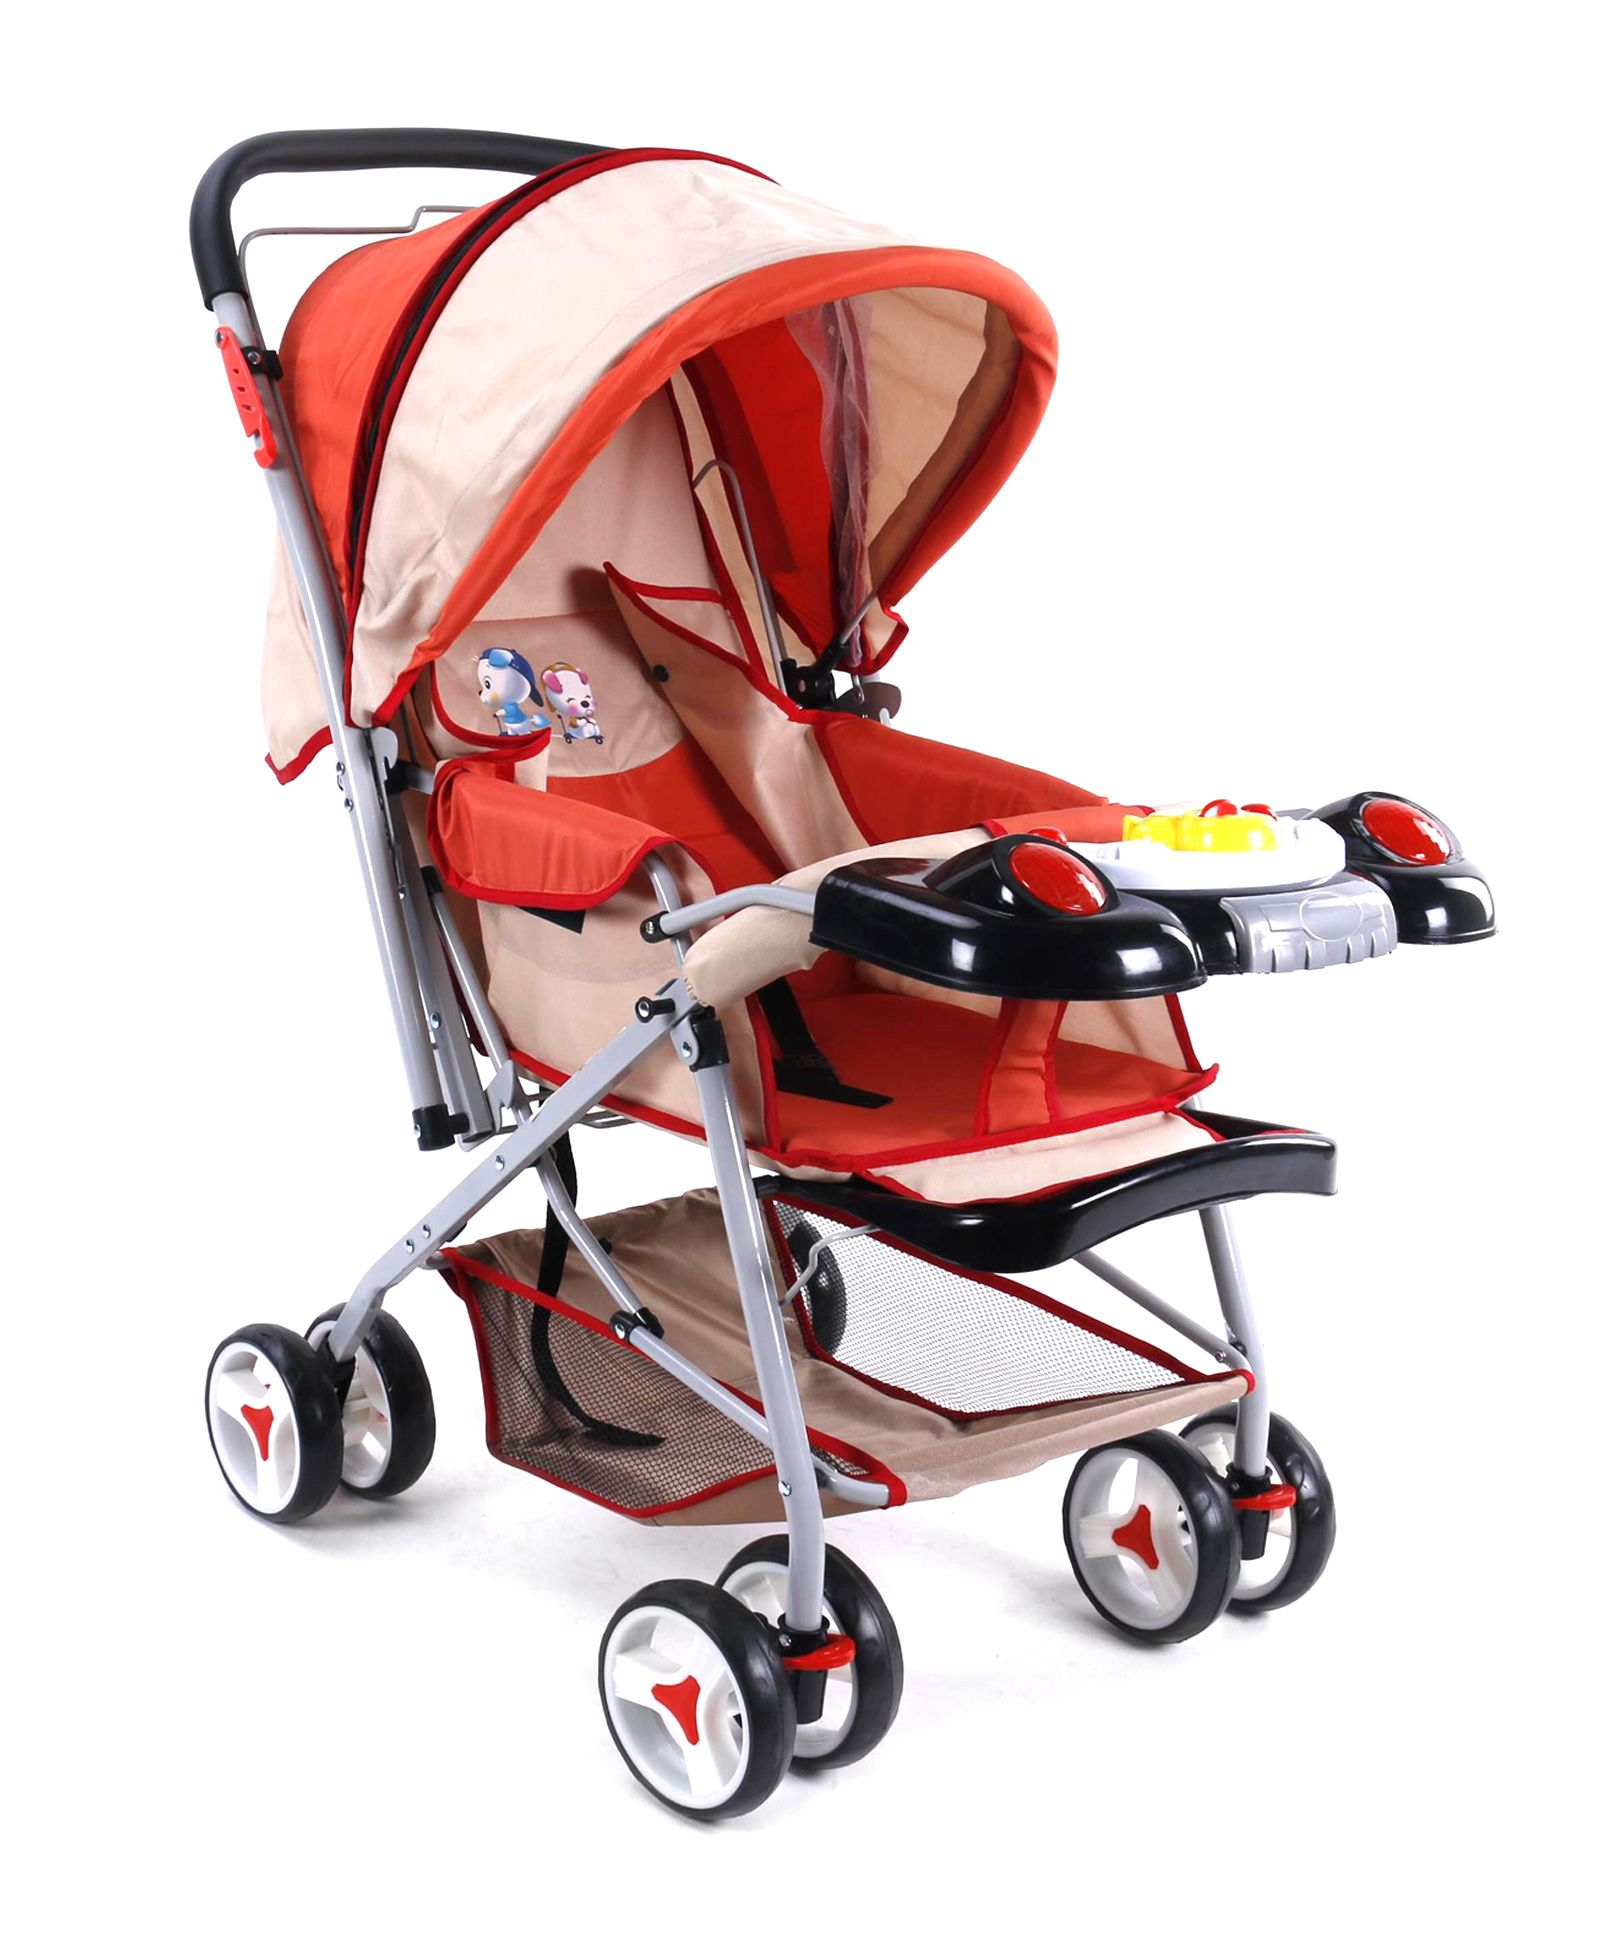 Baby Musical Stroller - Red And Dark Cream